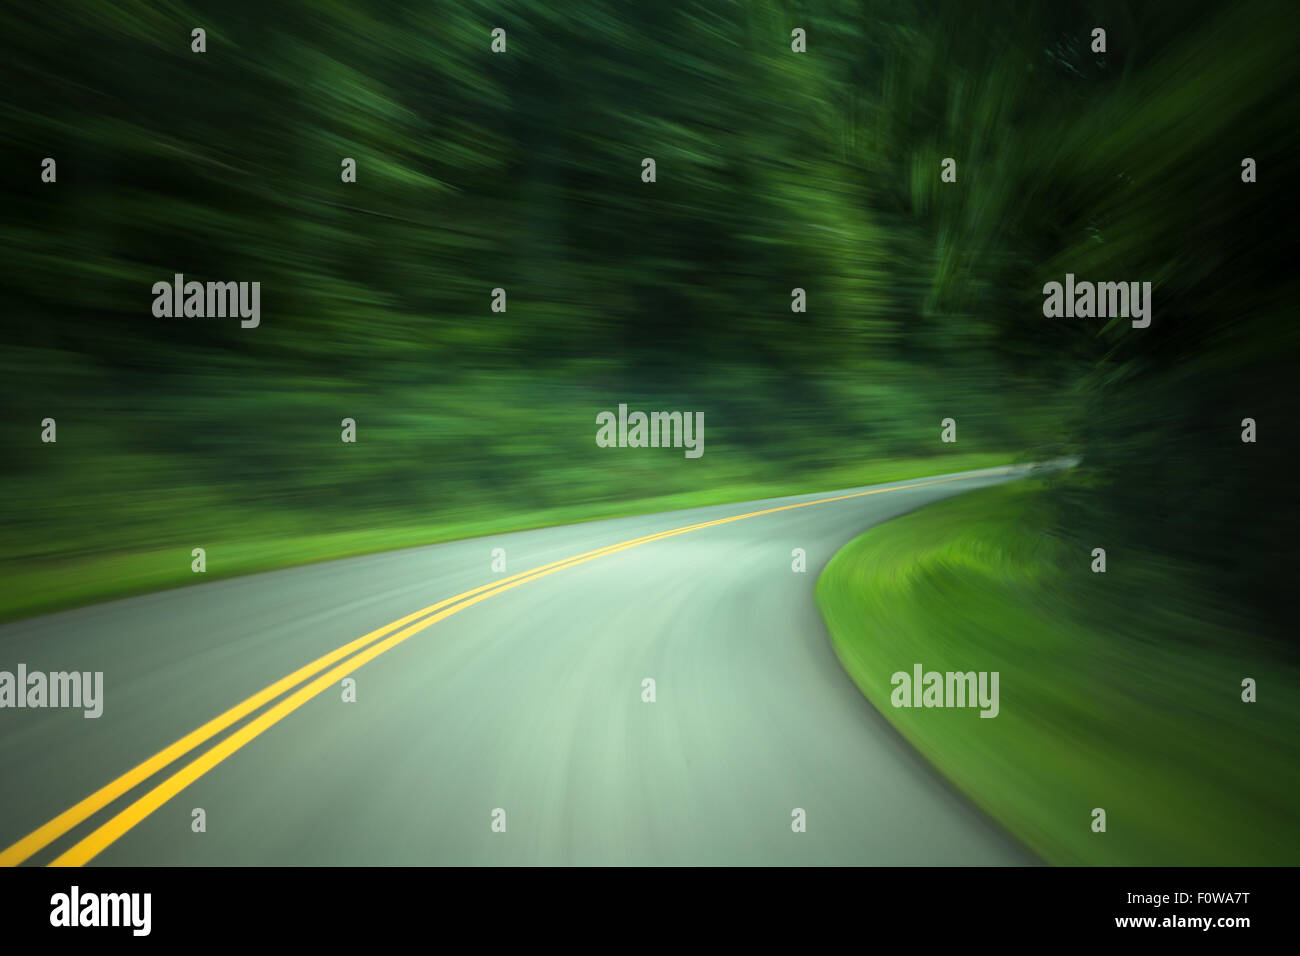 Road through forest with yellow lines and motion blur - Stock Image